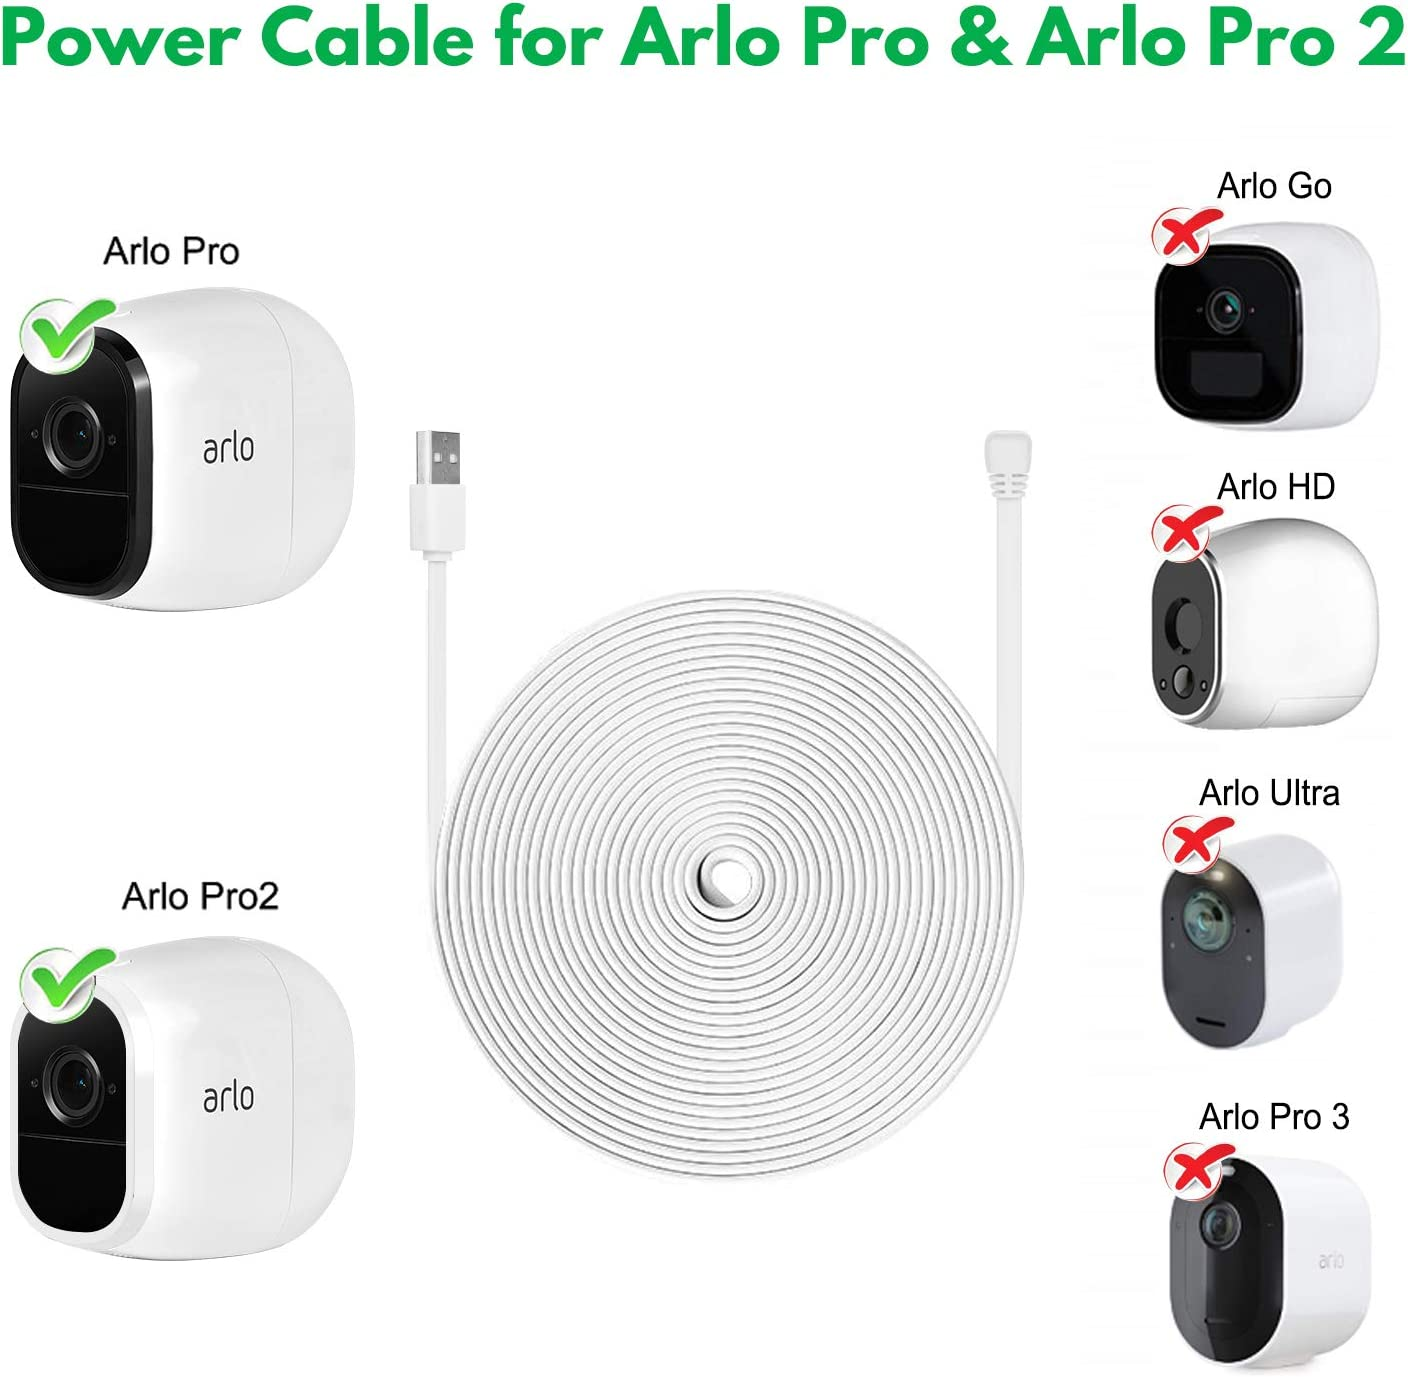 with Quick Charge 3.0 Power Adapter Charger Continuously Charging Your Arlo Camera Zeshbit 30FT Weatherproof Outdoor Power Cable for Arlo Pro and Arlo Pro 2 White